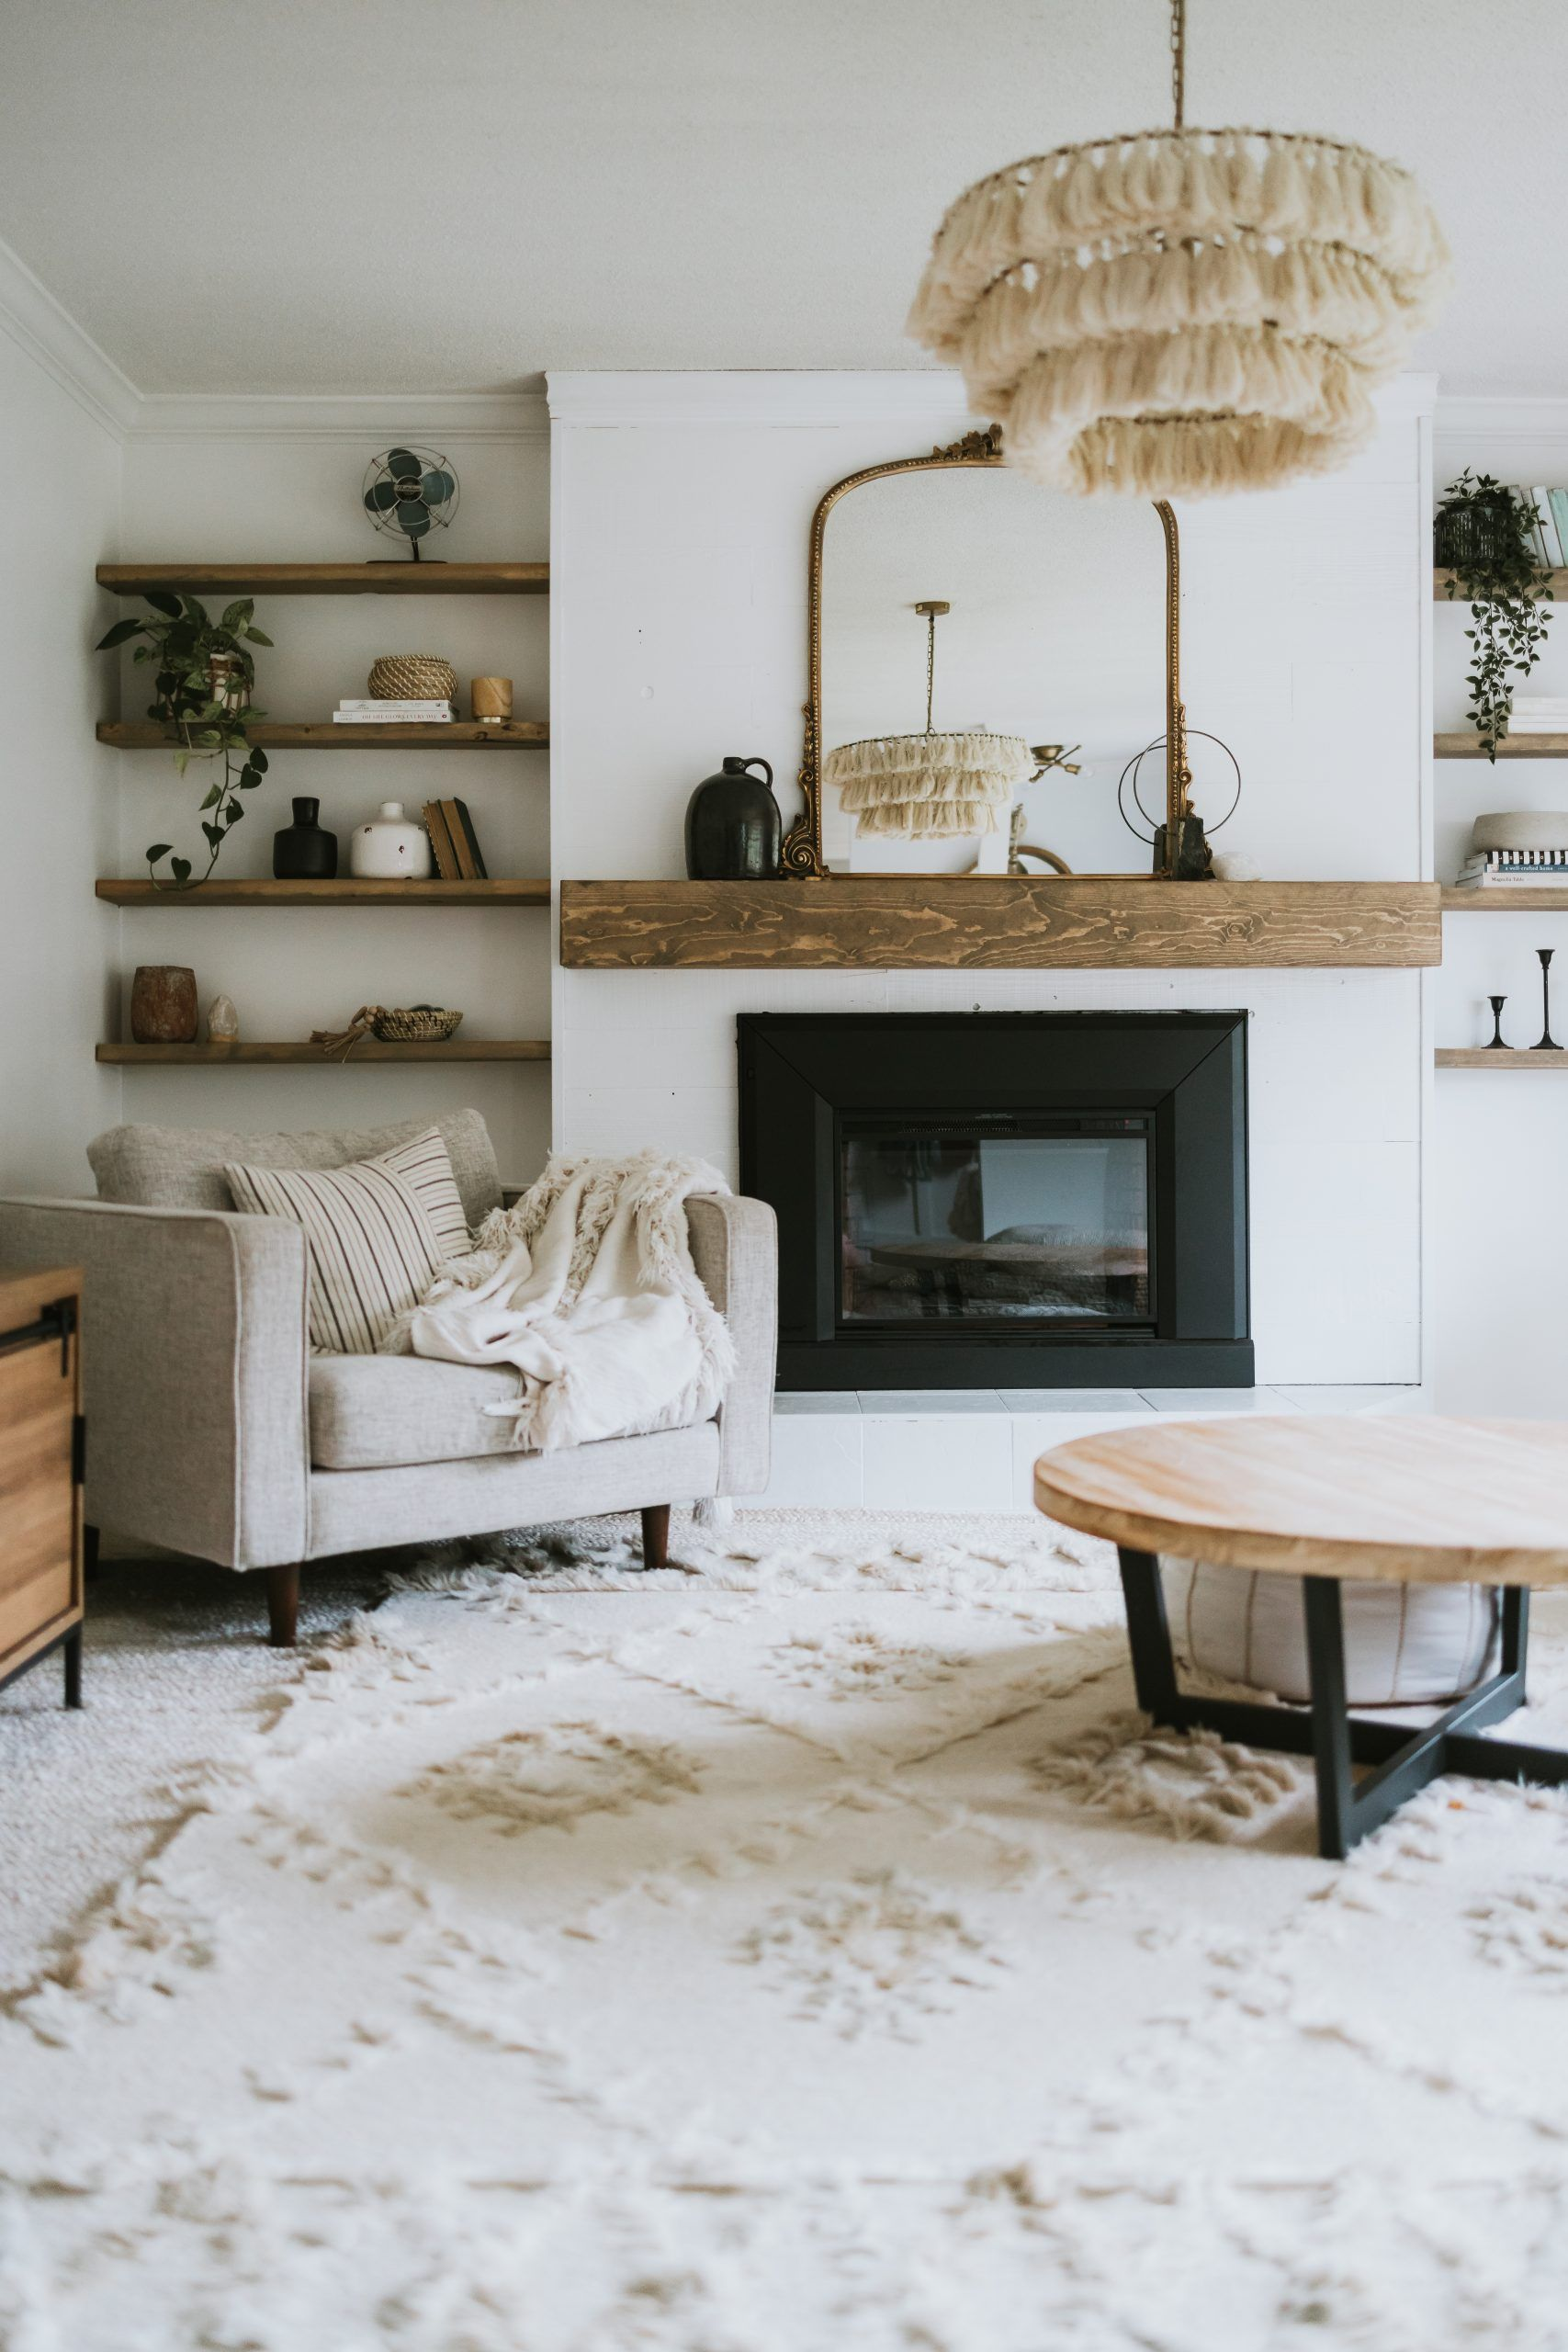 Top Ten Places To Find Discounted Decor. List of Stores that ship across North America.